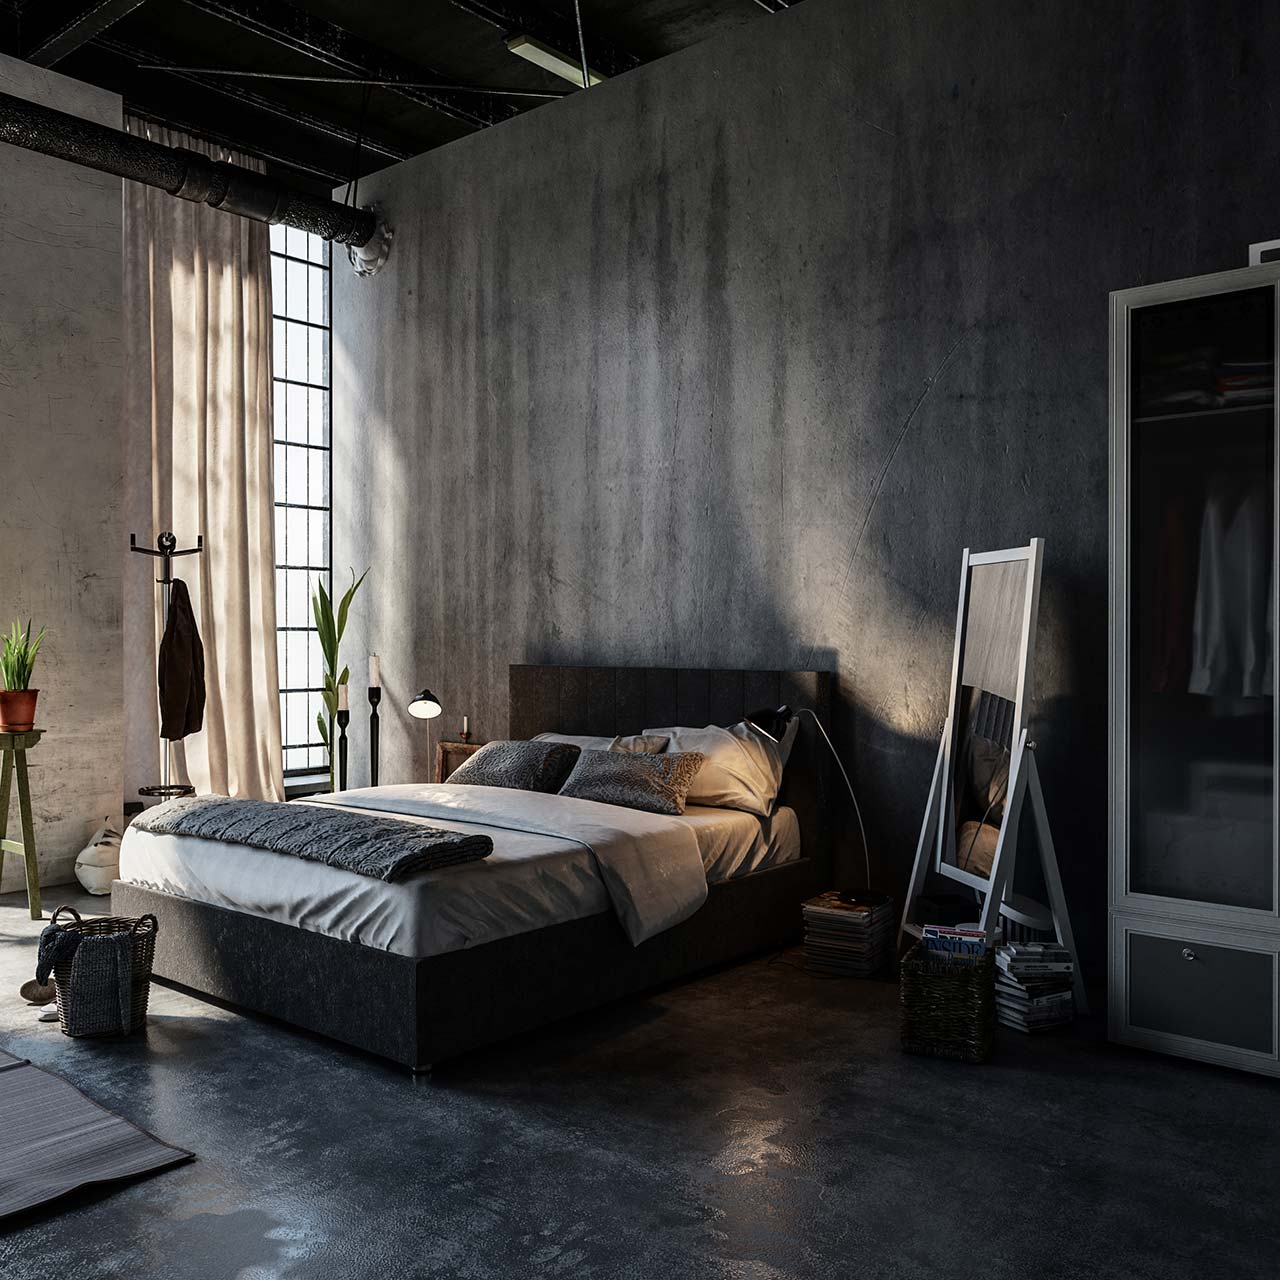 fabulous flooring idea for industrial style bedroom design